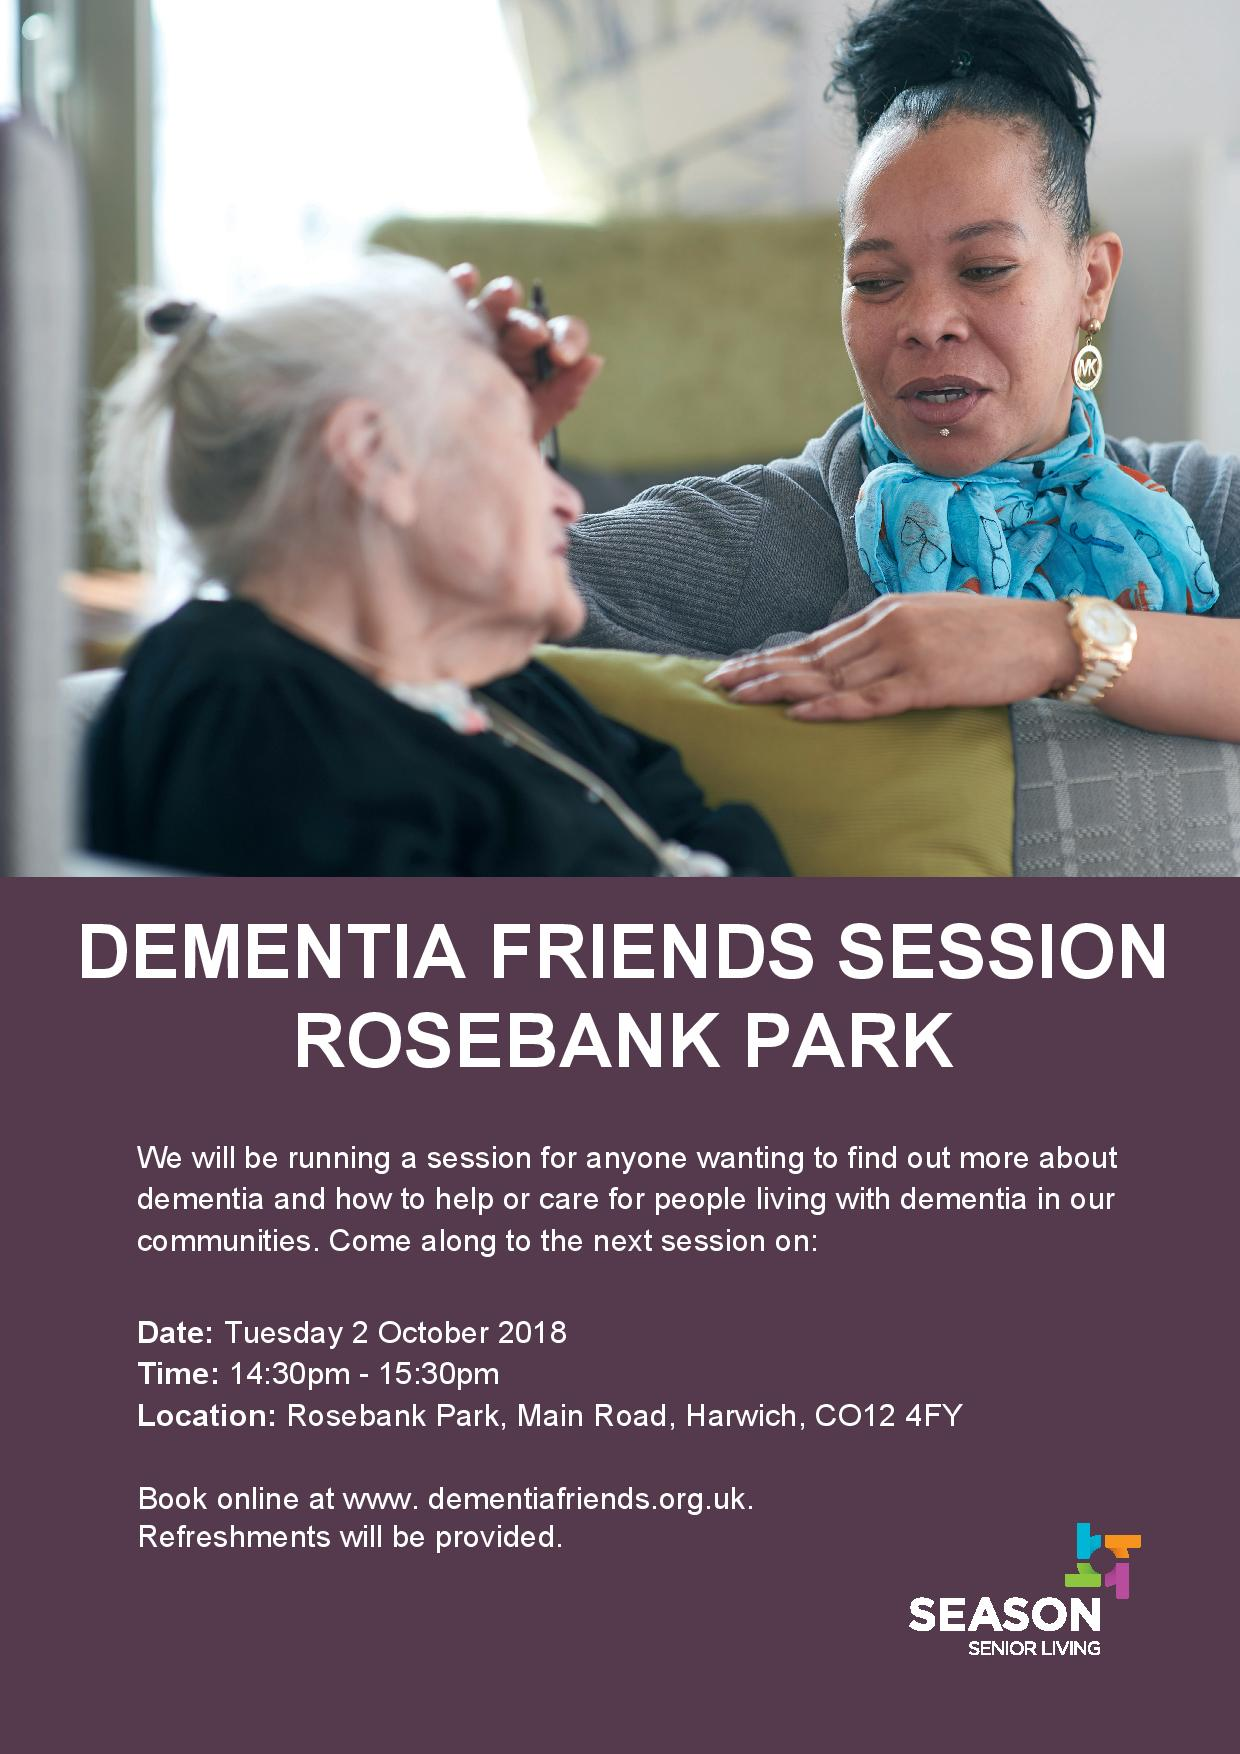 DEMENTIA FRIENDS SESSION ROSEBANK PARK